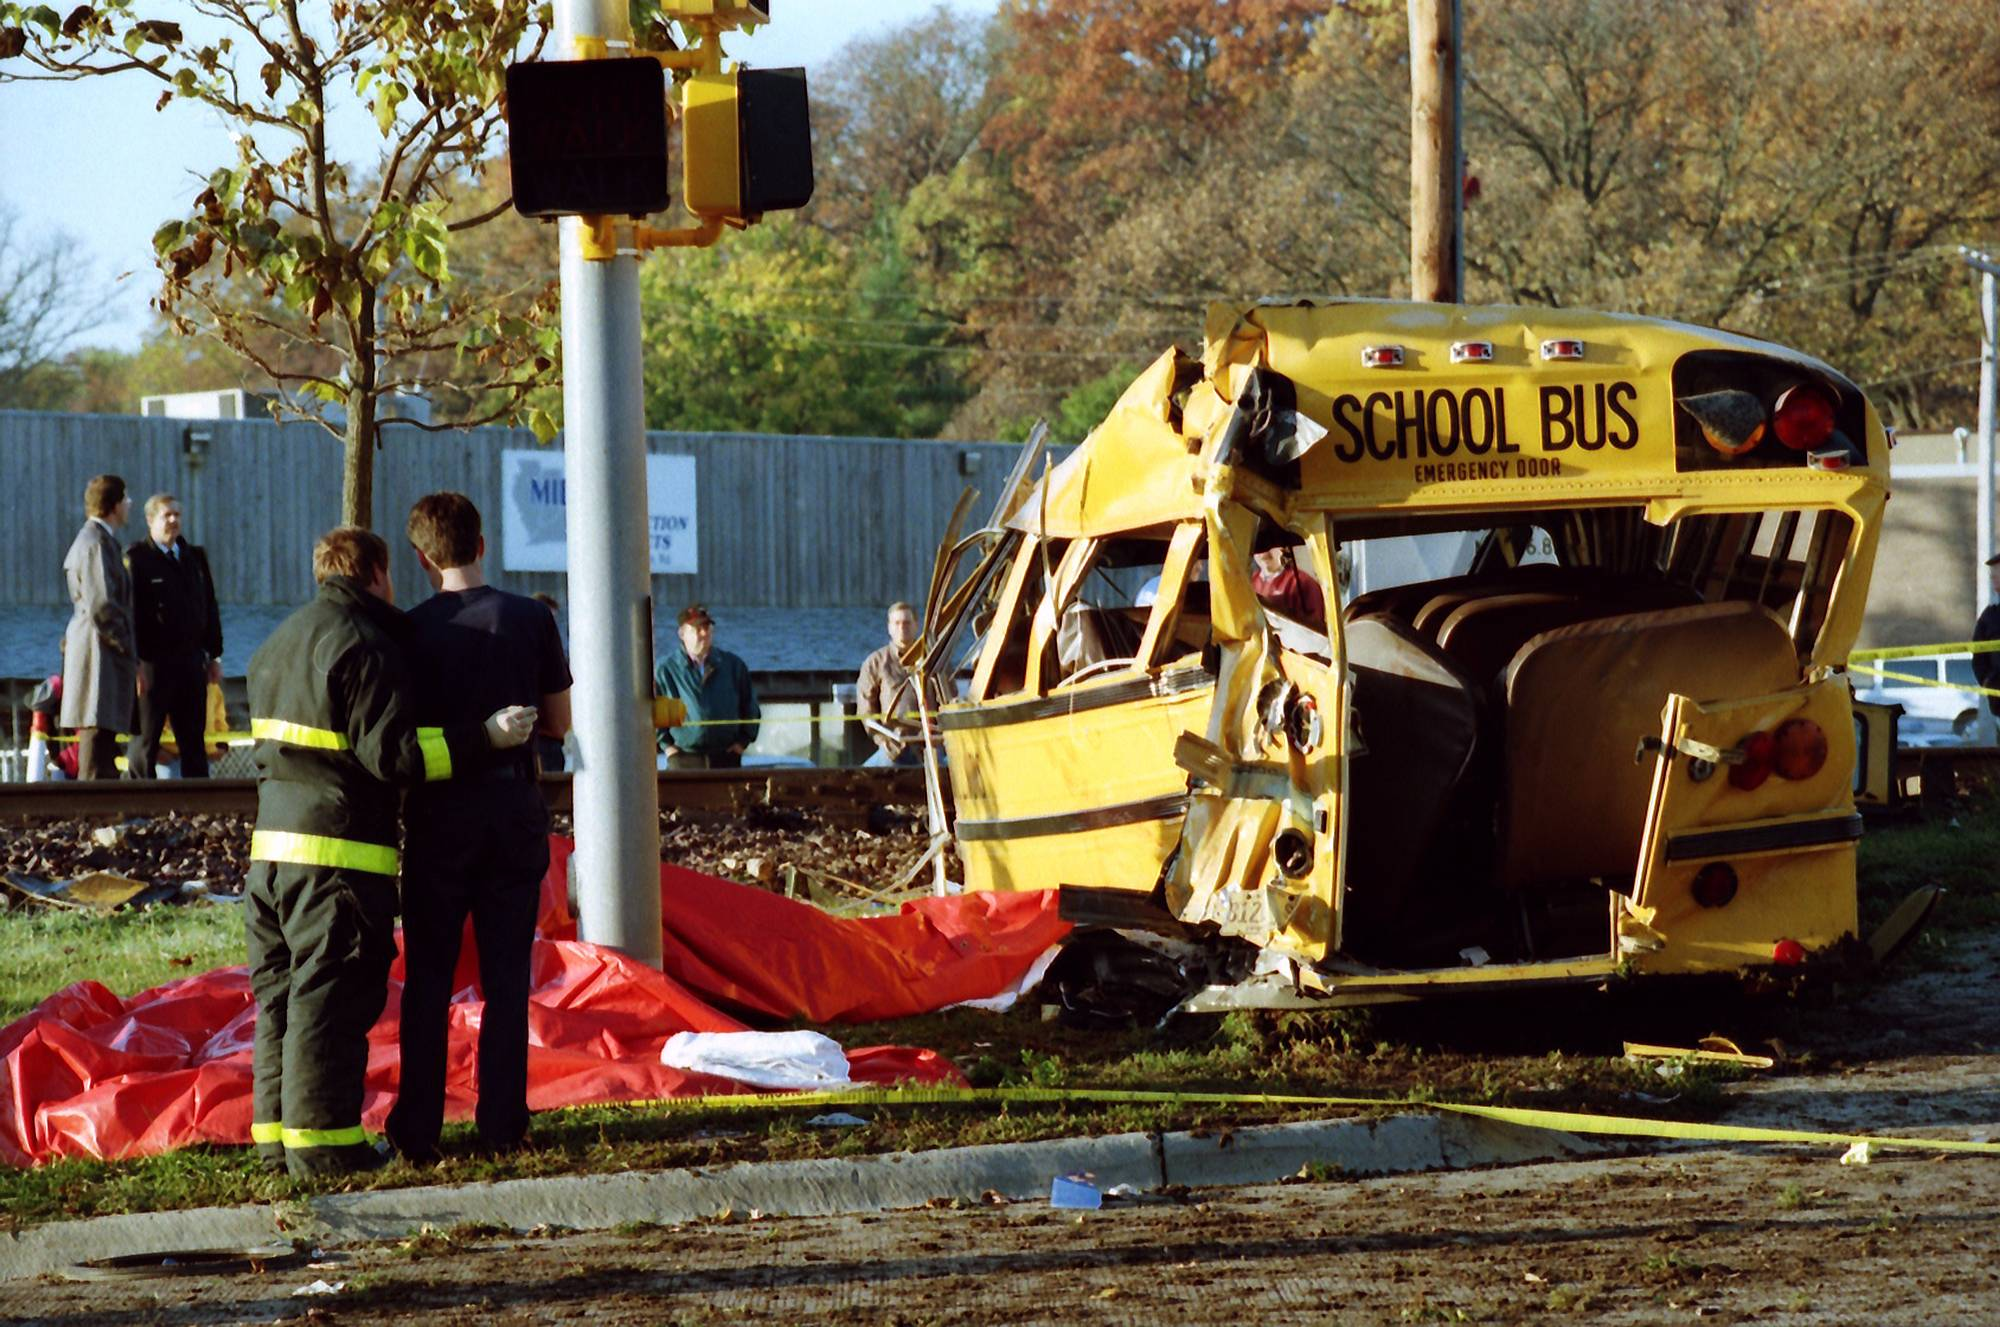 20 years after Fox River Grove bus accident, difficult emotions linger